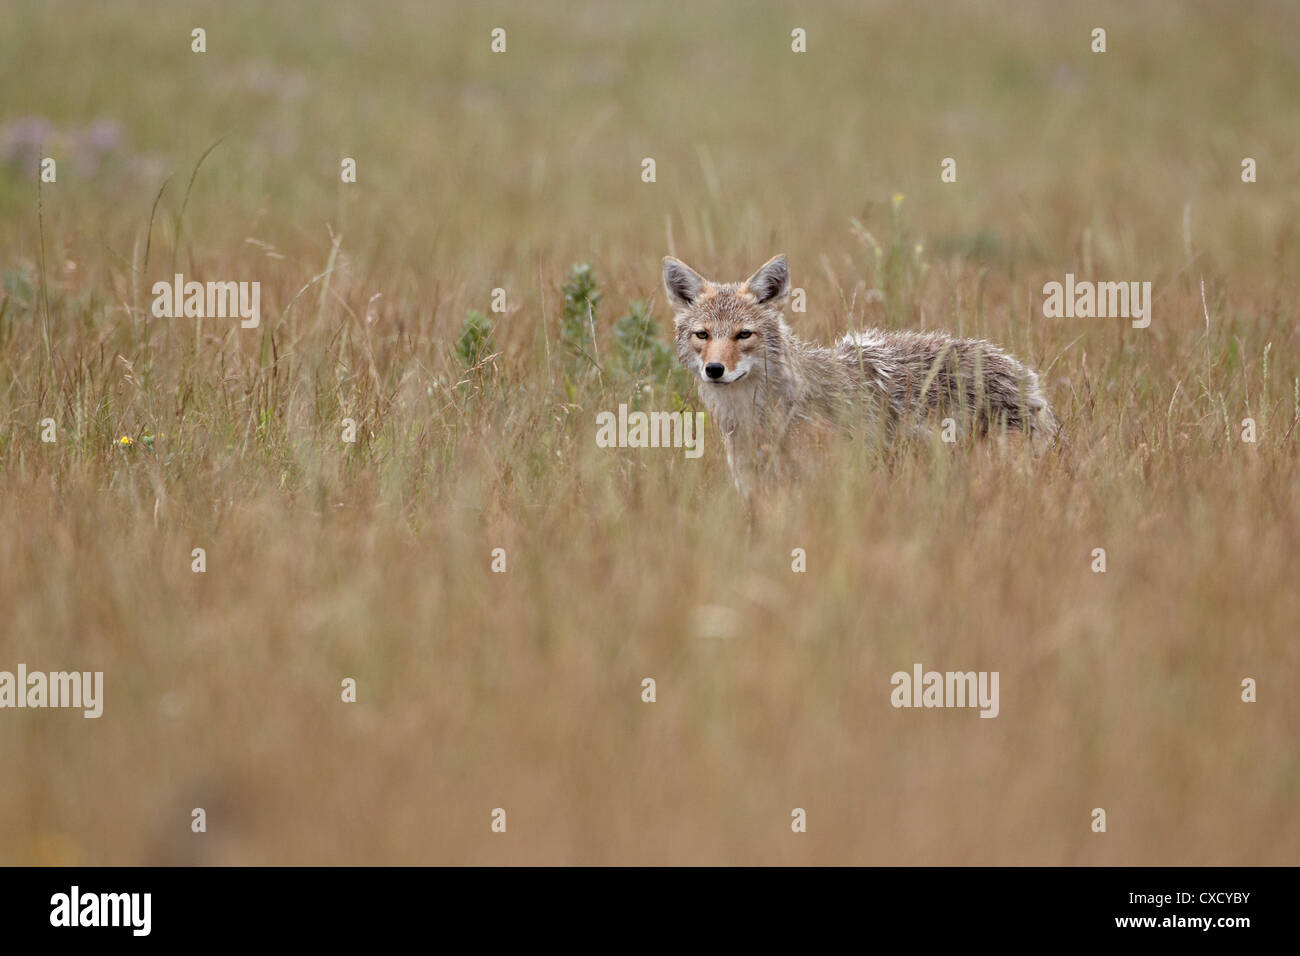 Coyote (Canis latrans), Waterton Lakes National Park, Alberta, Canada, North America - Stock Image